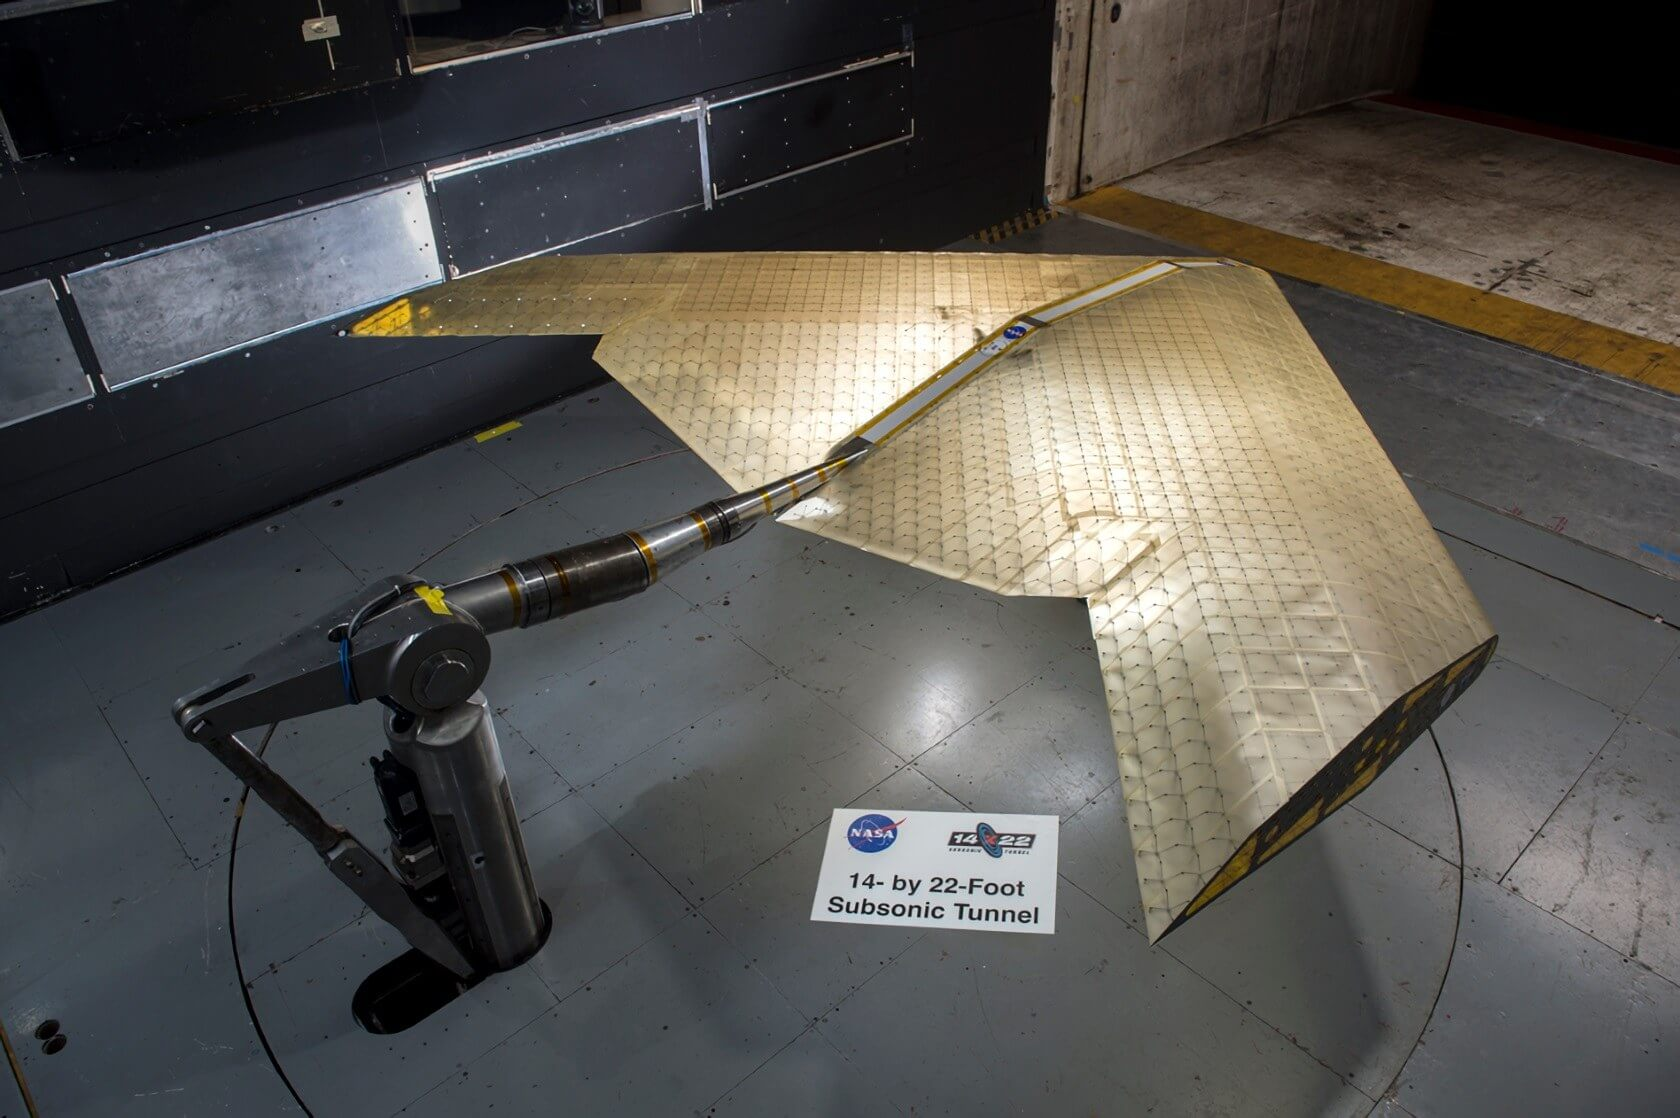 NASA, MIT engineers develop aircraft wing that can change shape mid